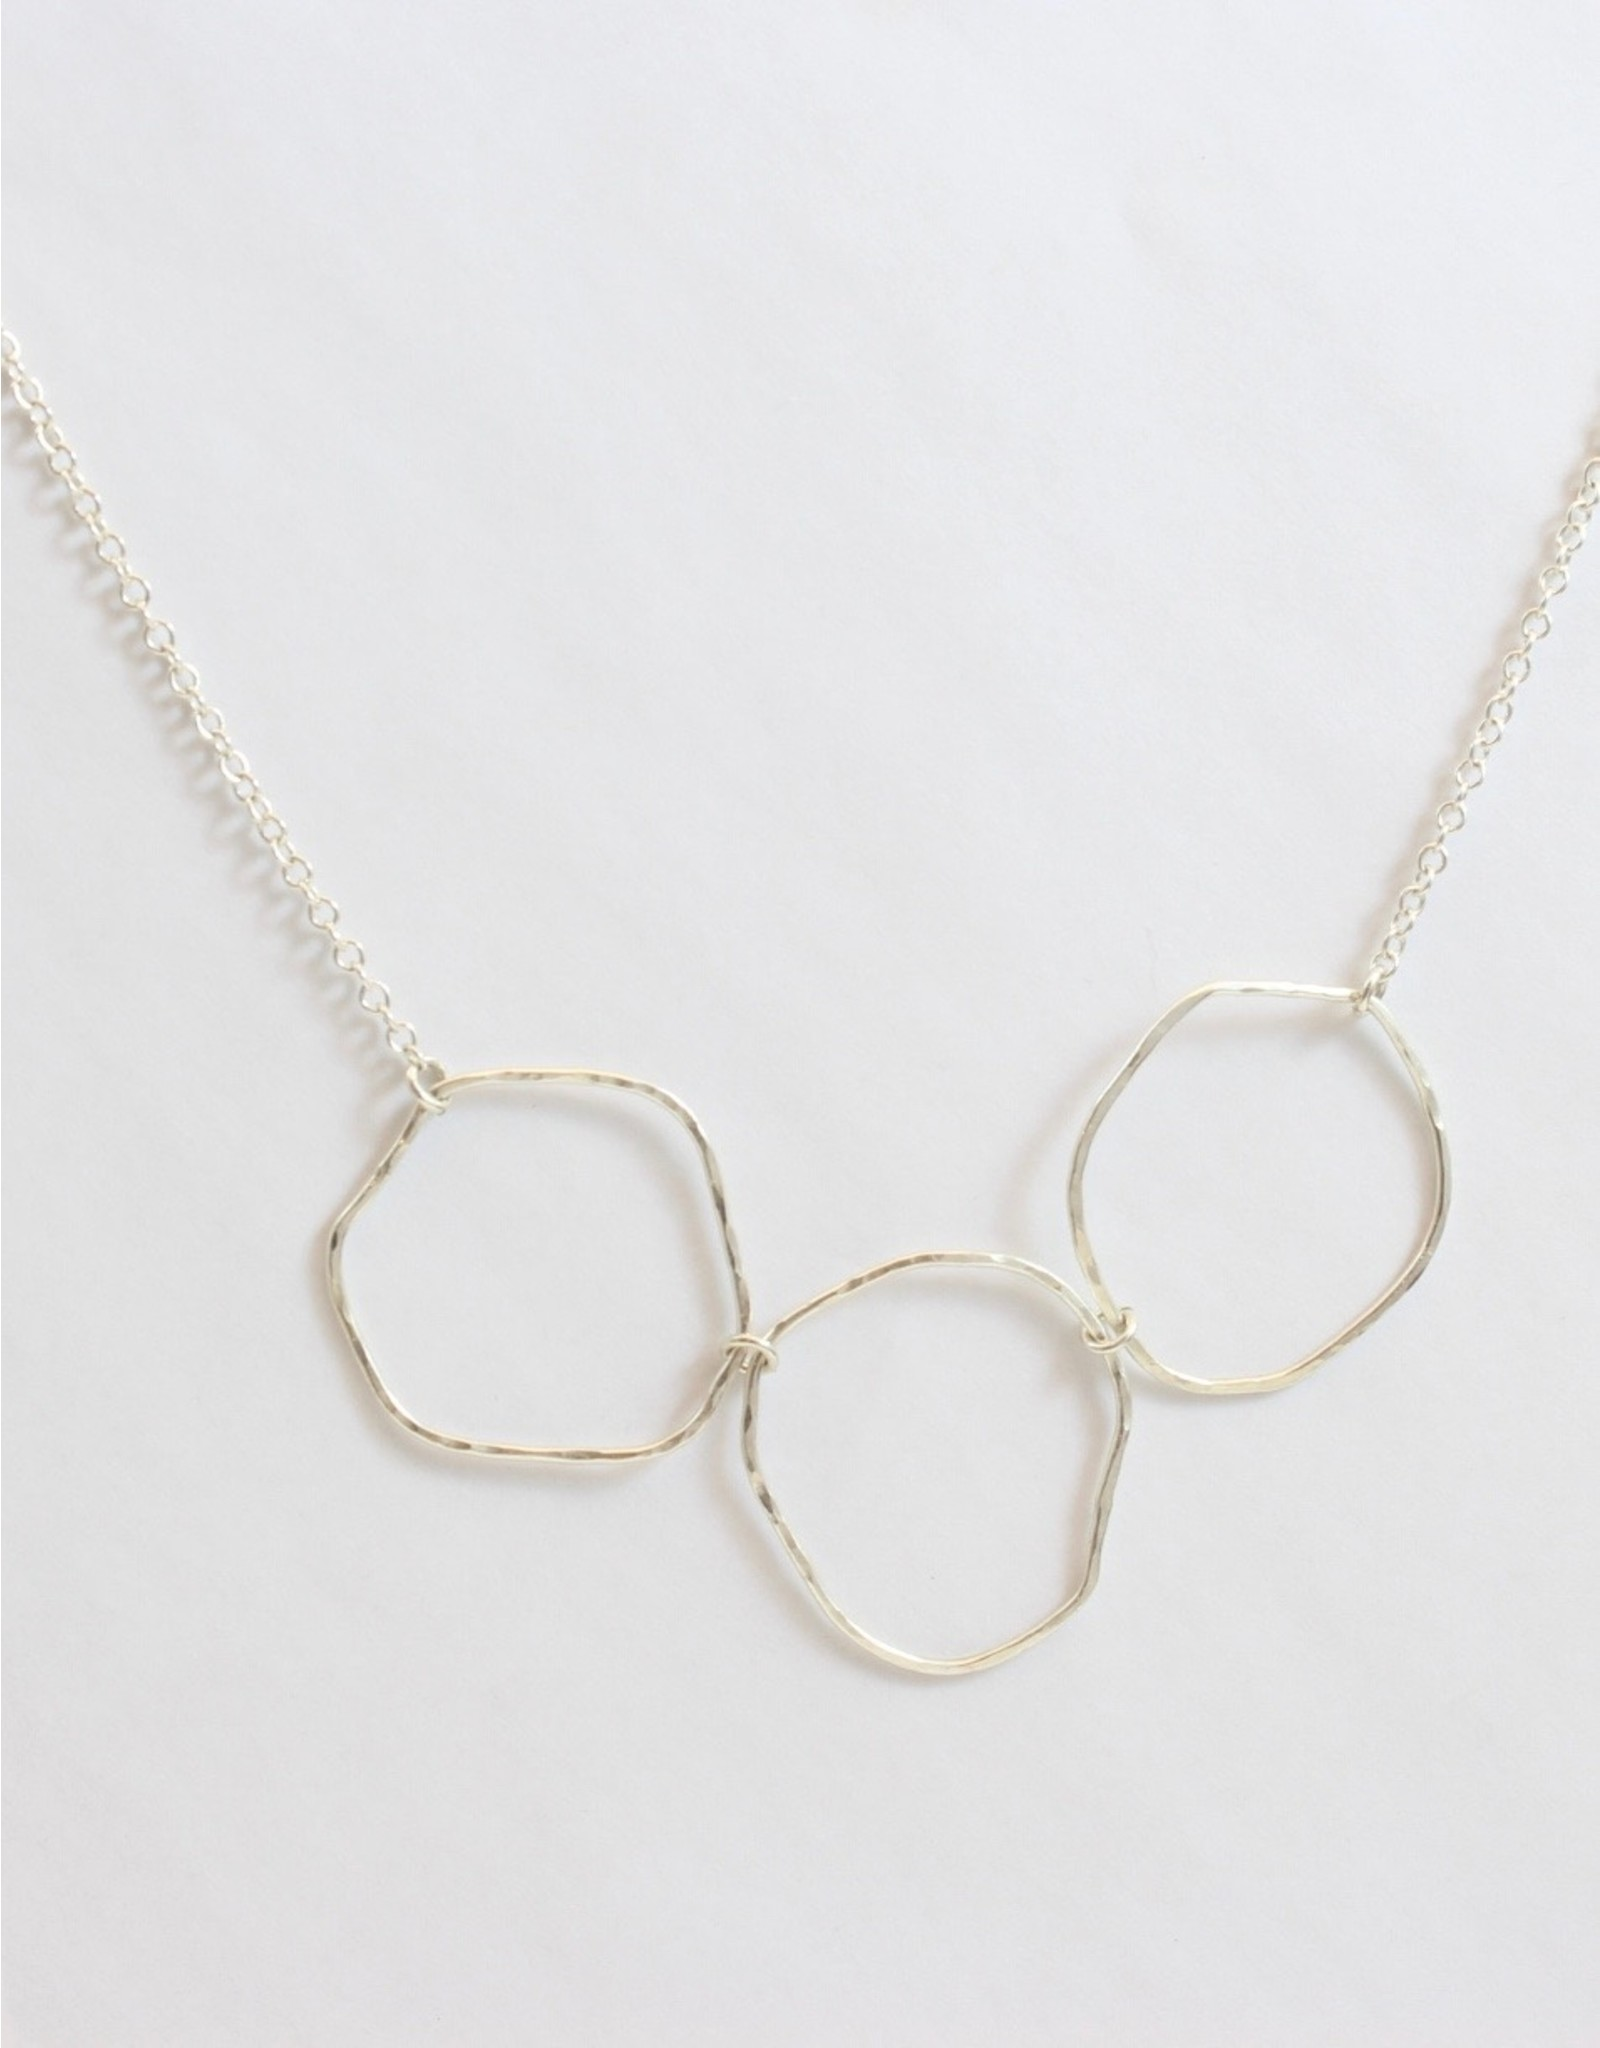 Jim & Judy MacLean Hoops and Chain Necklace by Jim & Judy McLean